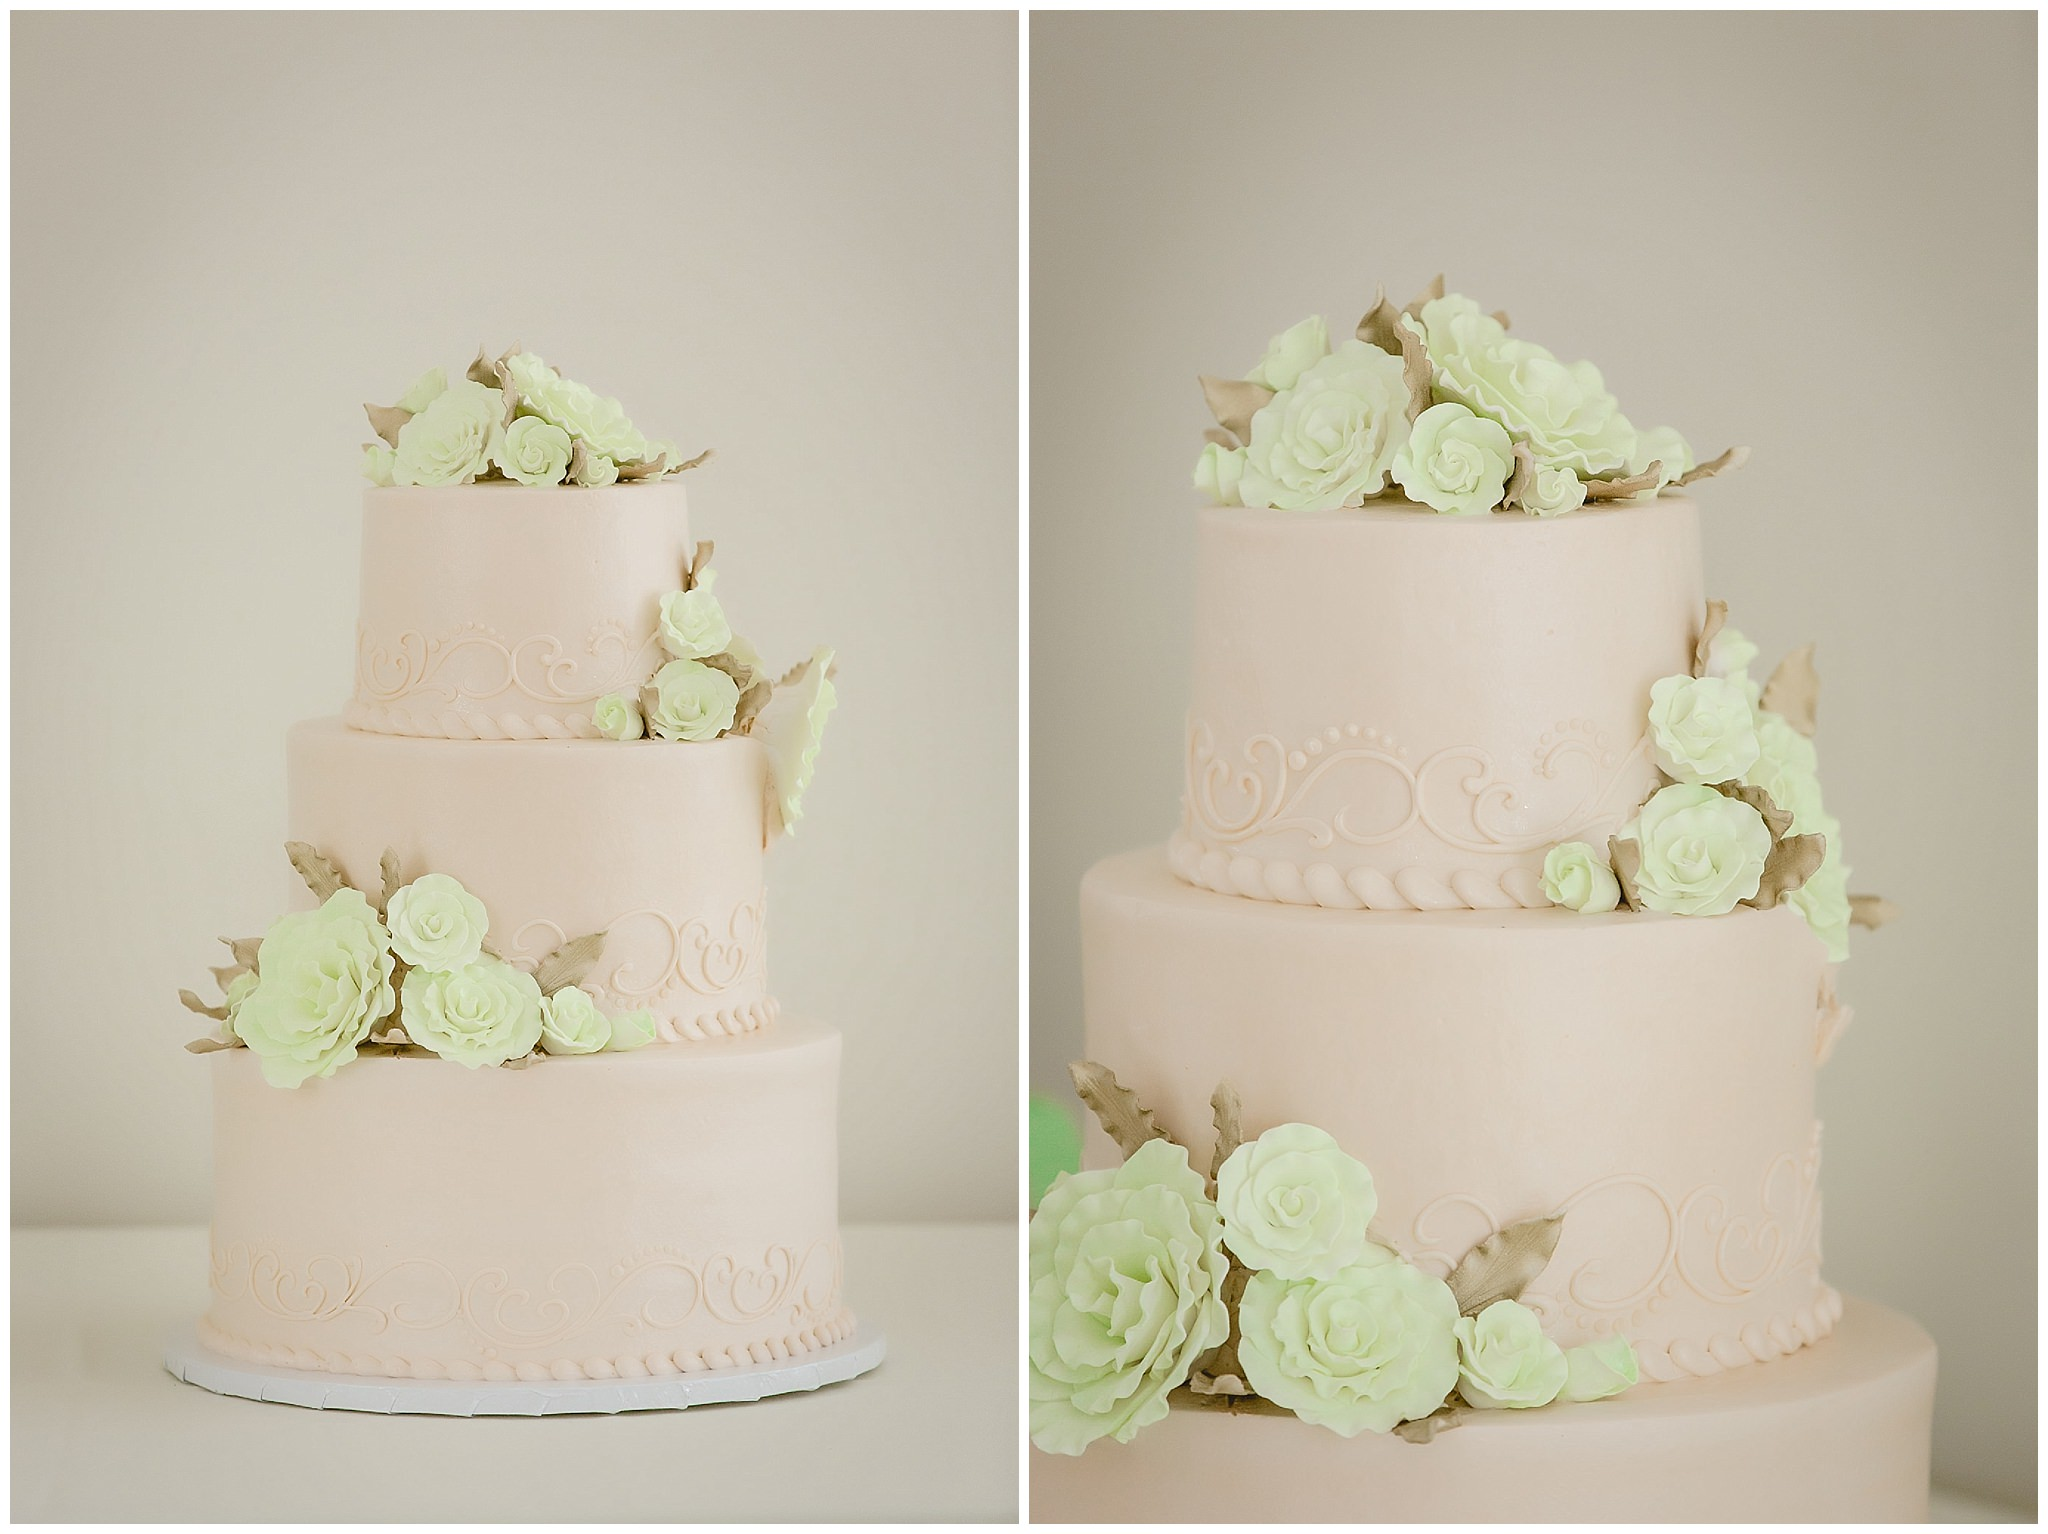 Peach and mint wedding cake by Oakmont Bakery